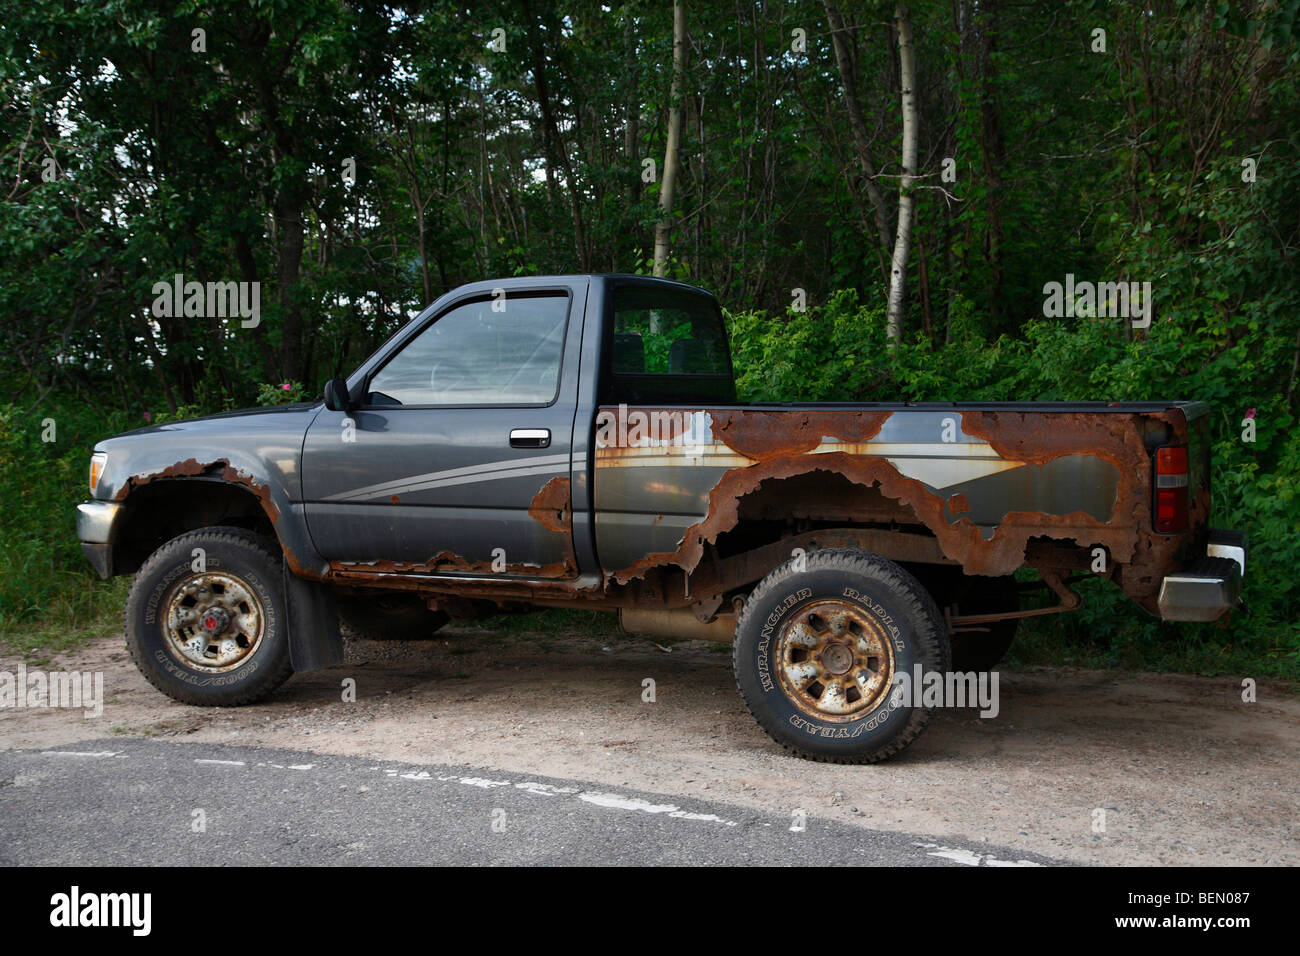 Old rusty junky Toyota pickup truck Stock Photo: 26276775 - Alamy